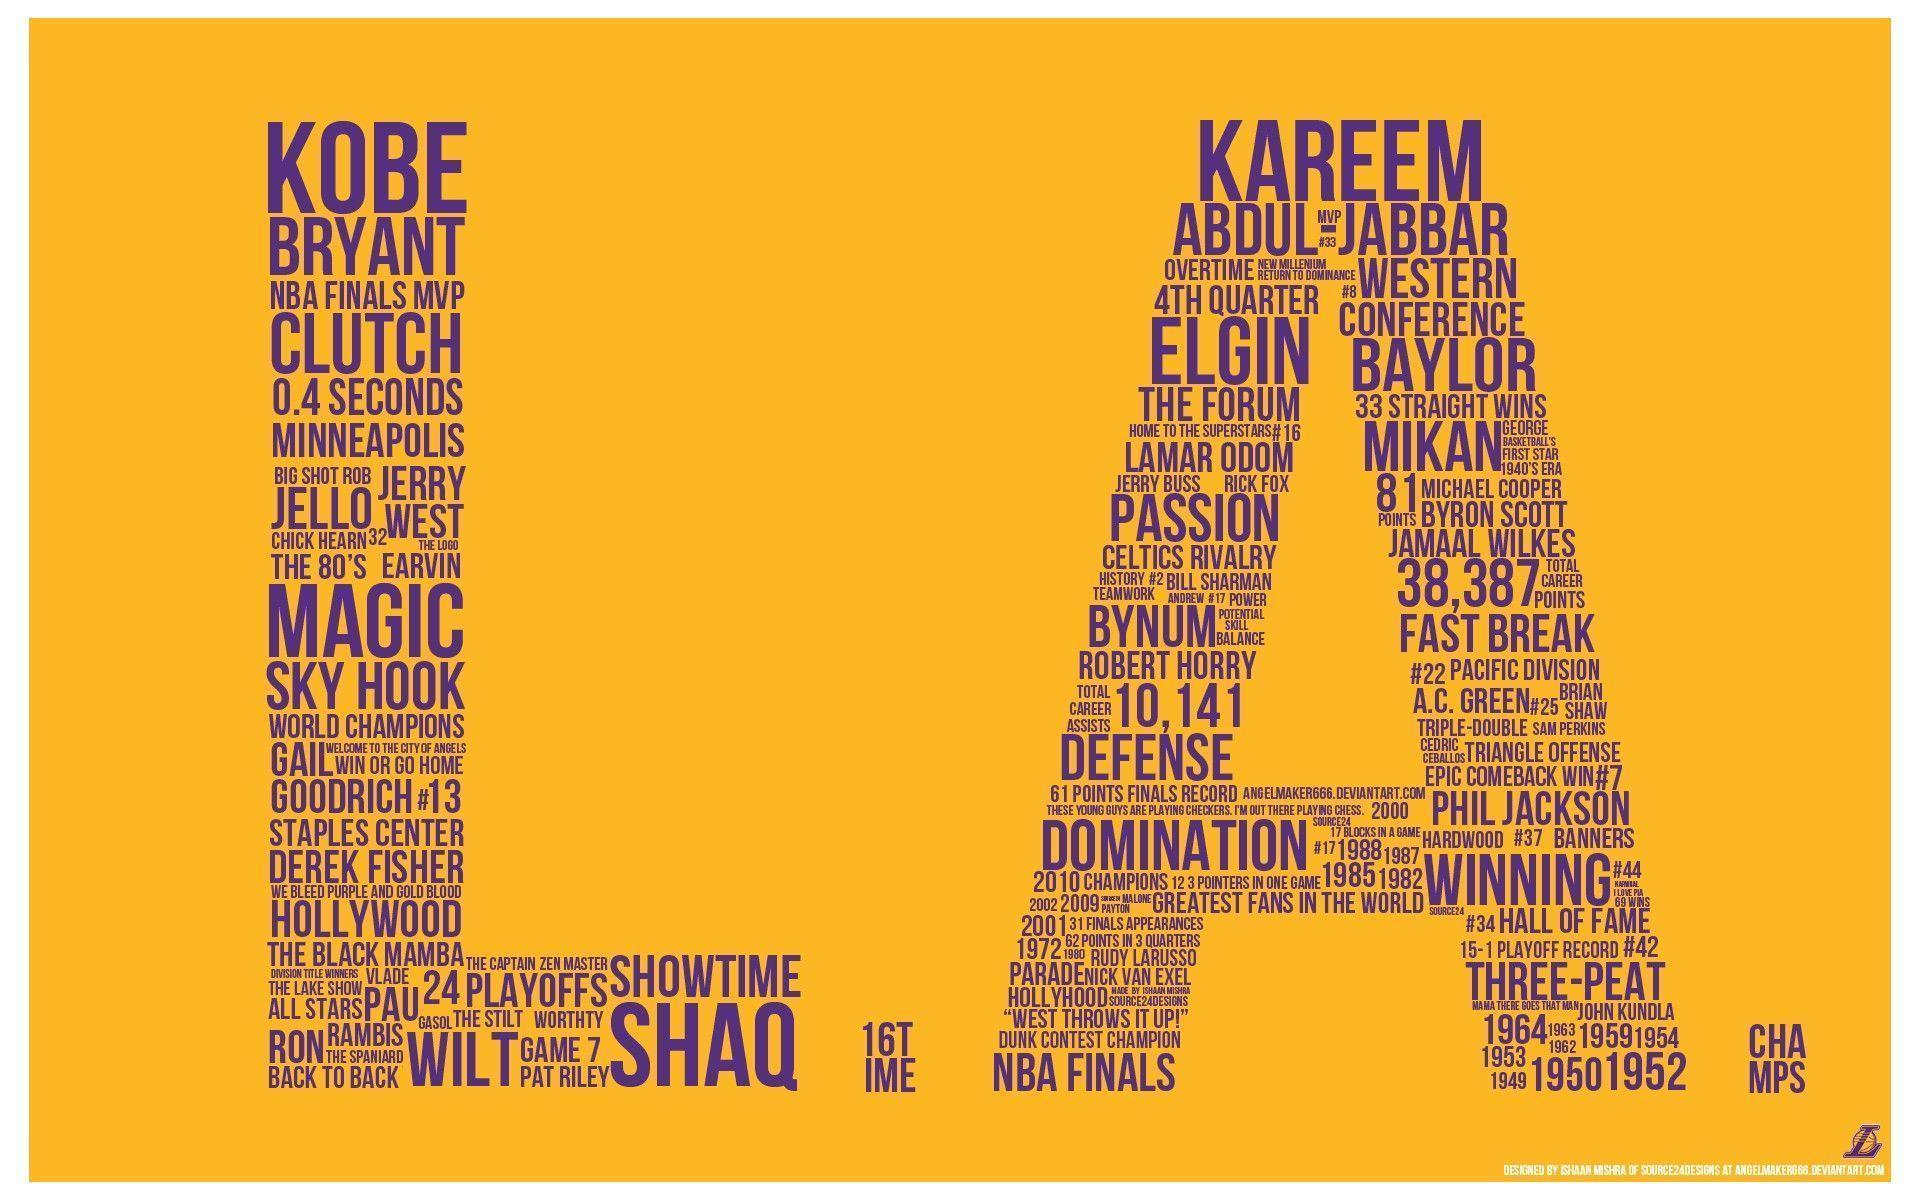 Los Angeles Lakers Kobe Bryant Magic Johnson Karen